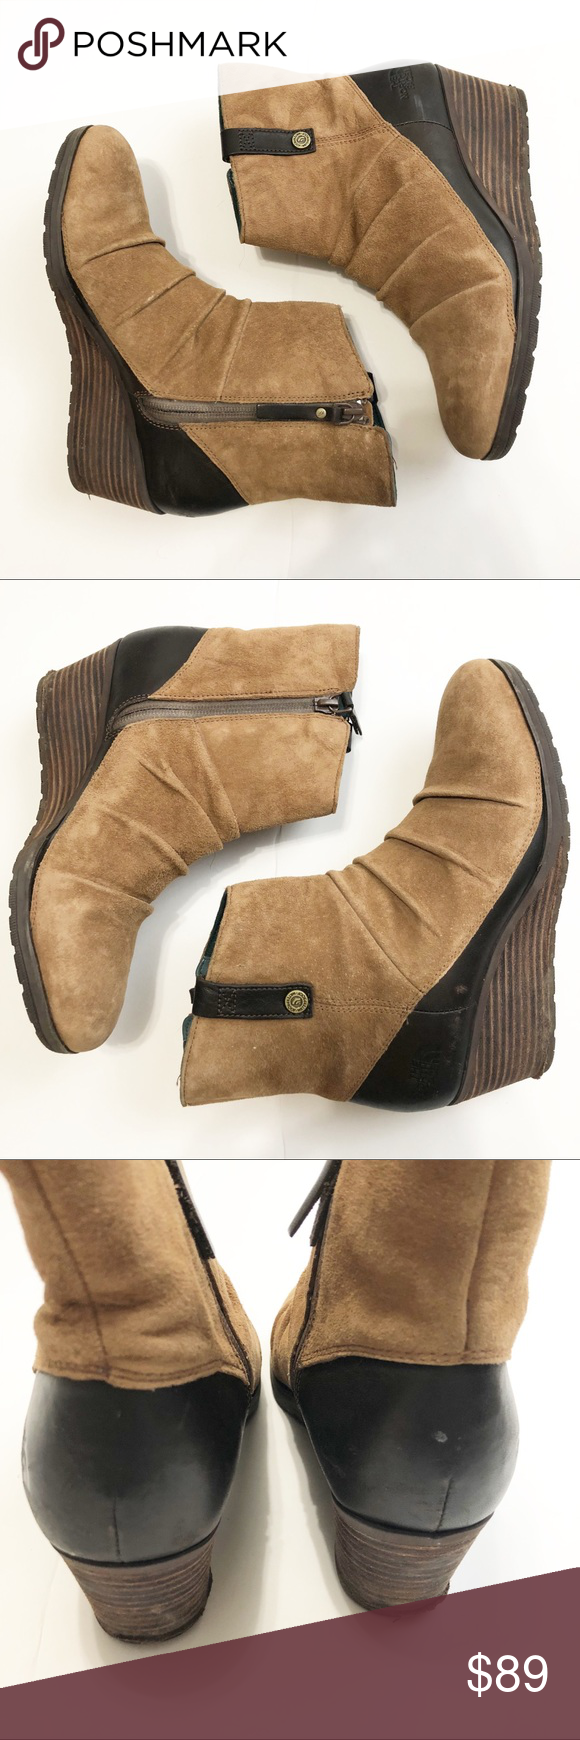 18b5d726942 Spotted while shopping on Poshmark  The North Face Bridgeton Wedge Zip  Booties Boots!  poshmark  fashion  shopping  style  The North Face  Shoes